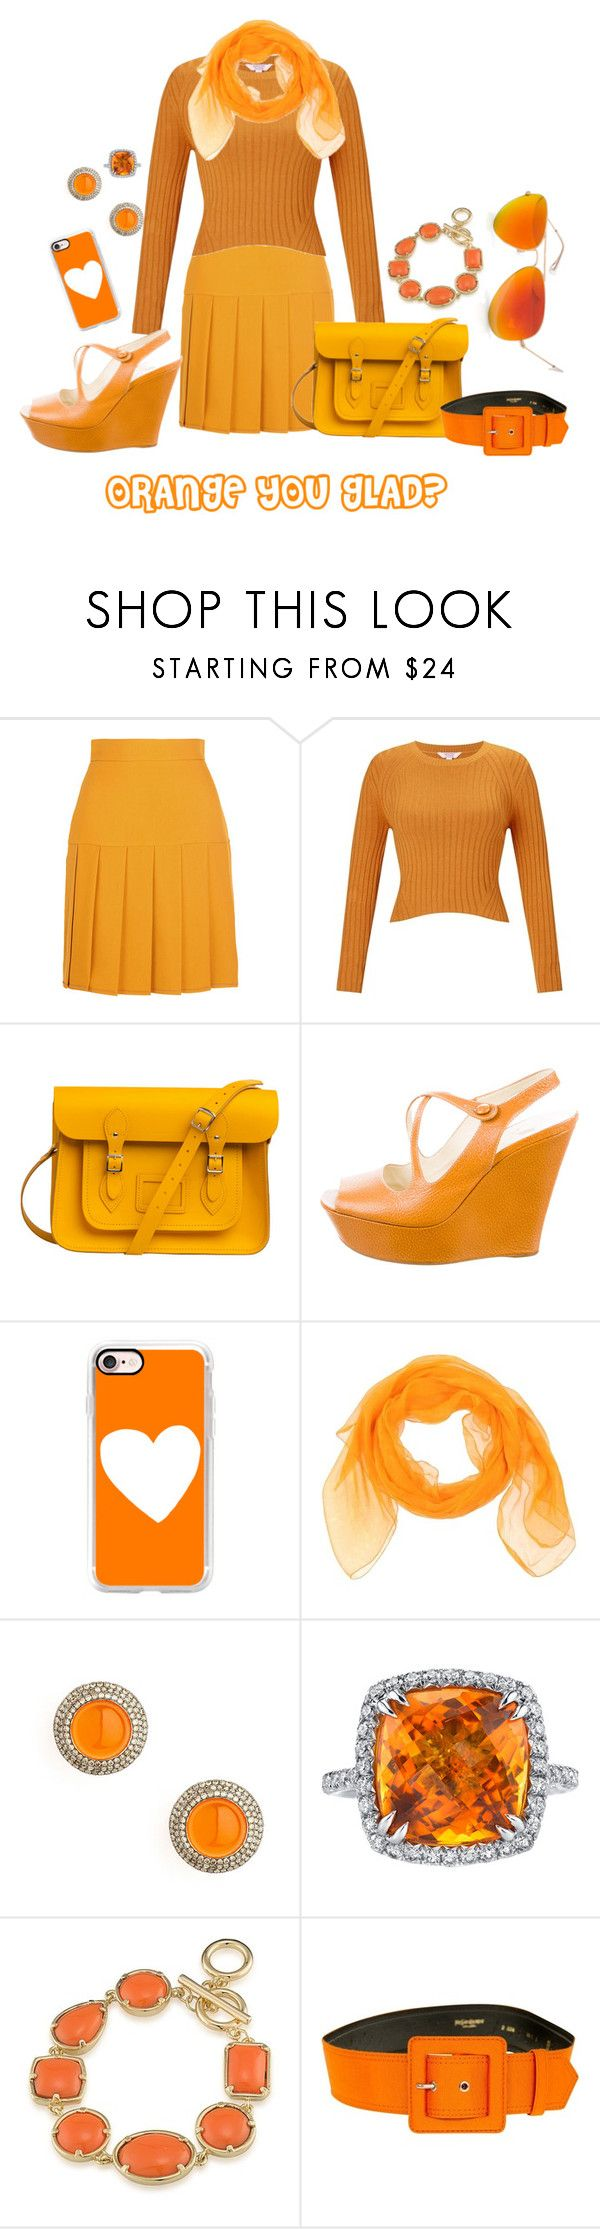 """""""Orange you glad?"""" by grace-buerklin ❤ liked on Polyvore featuring Gucci, Miss Selfridge, The Cambridge Satchel Company, Prada, Casetify, Idea Plus, Syna, Michael Barin, 1st & Gorgeous by Carolee and Yves Saint Laurent"""